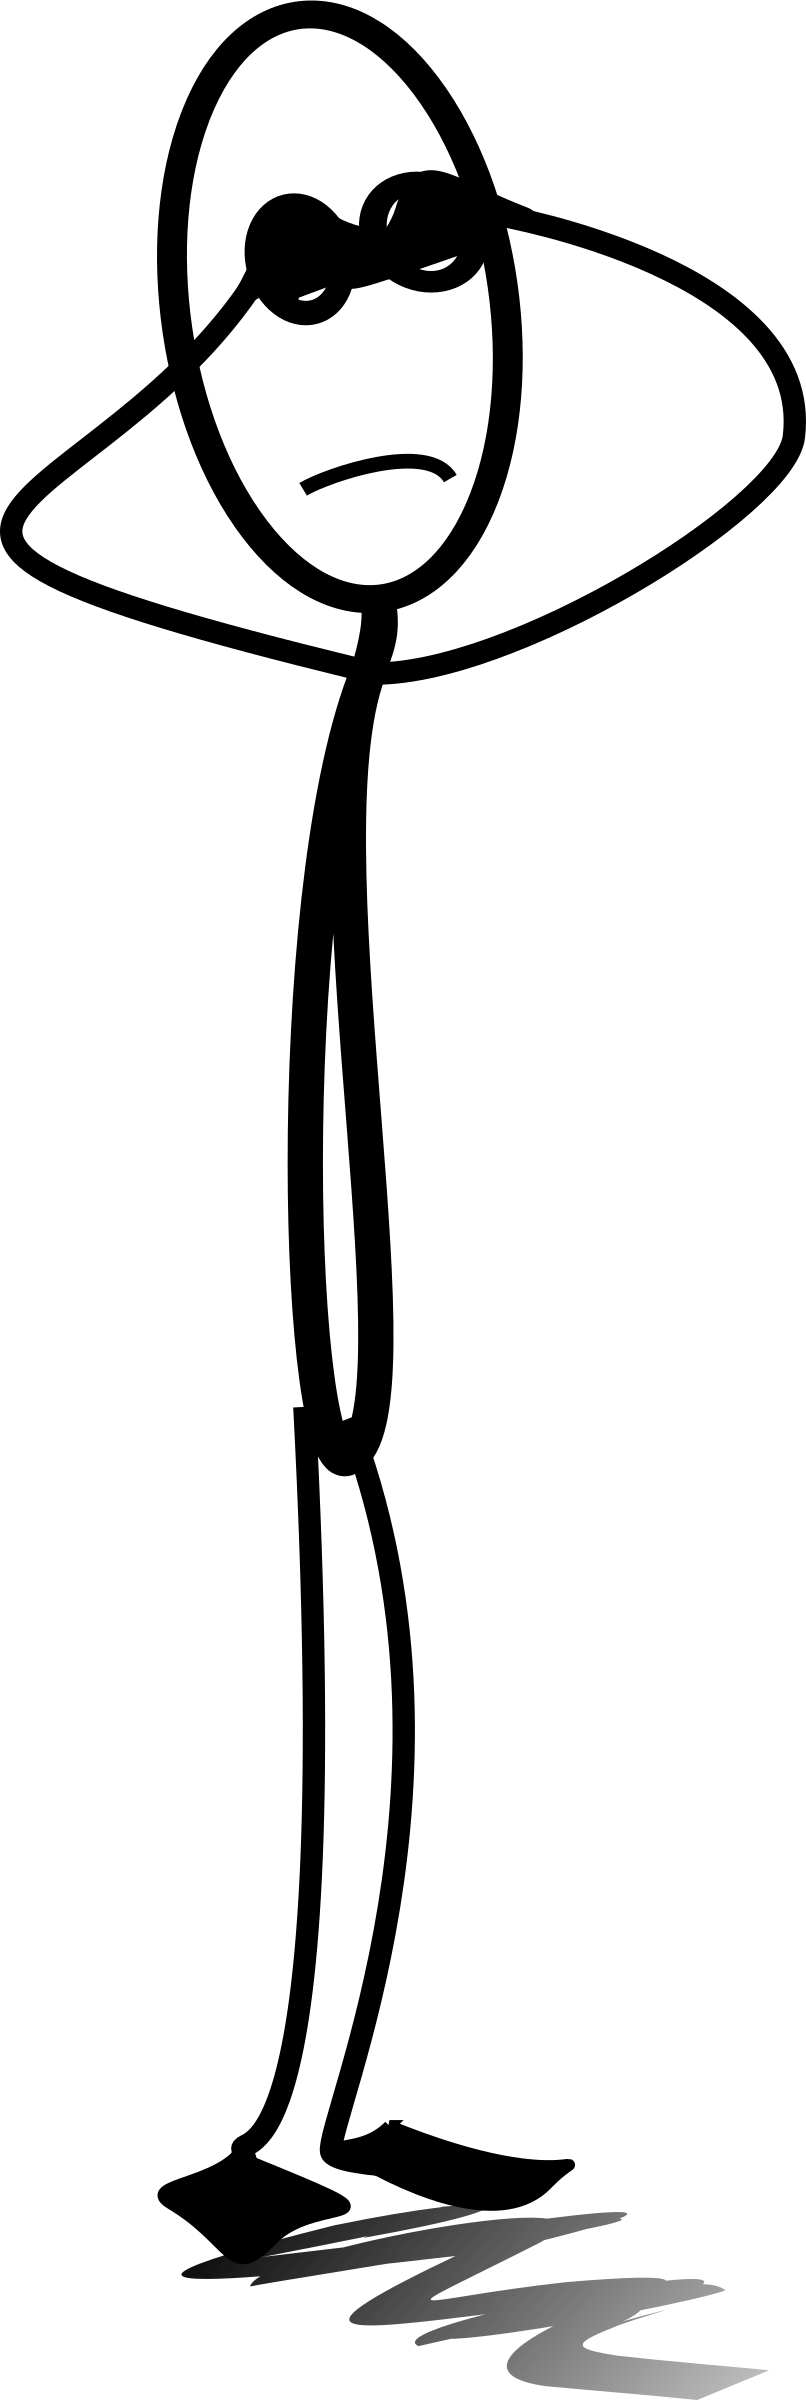 Big Image - Stick Figure Looking Up (806x2400), Png Download